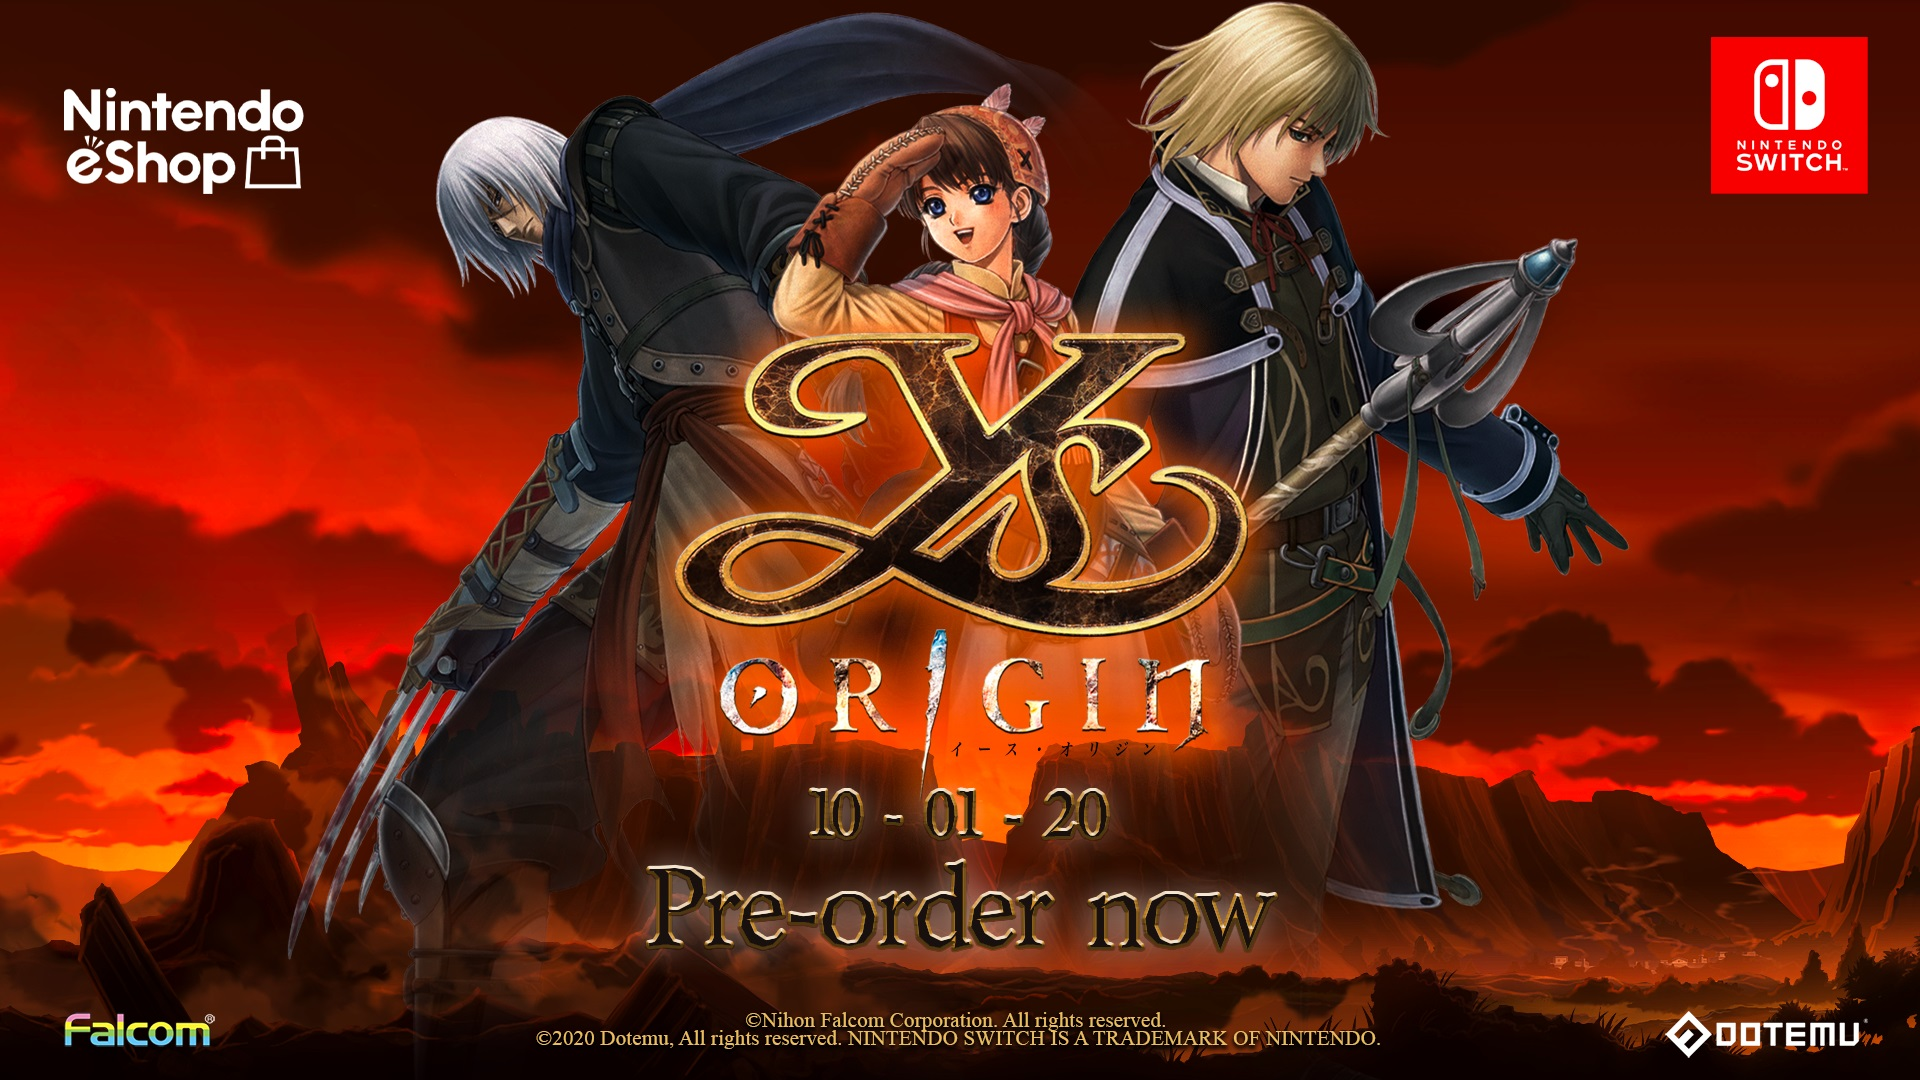 You can now pre-order Ys Origin on Nintendo Switch!